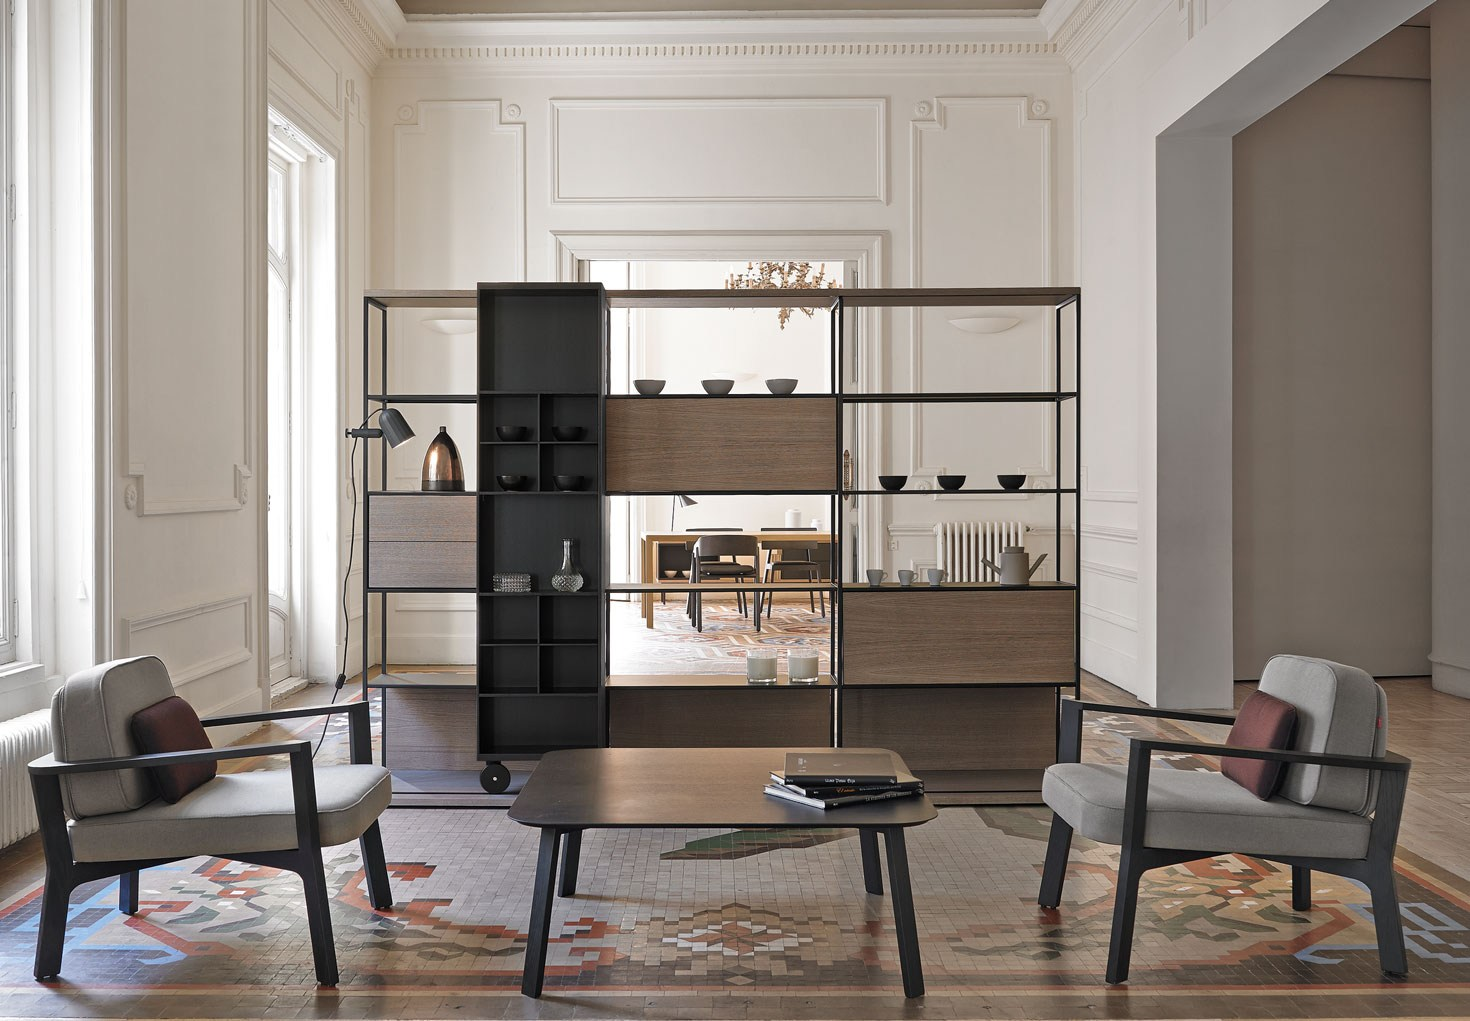 LITERATURA bookshelf  from punt is perfect for both small-scale storage solutions and large compositions, against the wall or as a freestanding room partition, adding style and functionality to any space.